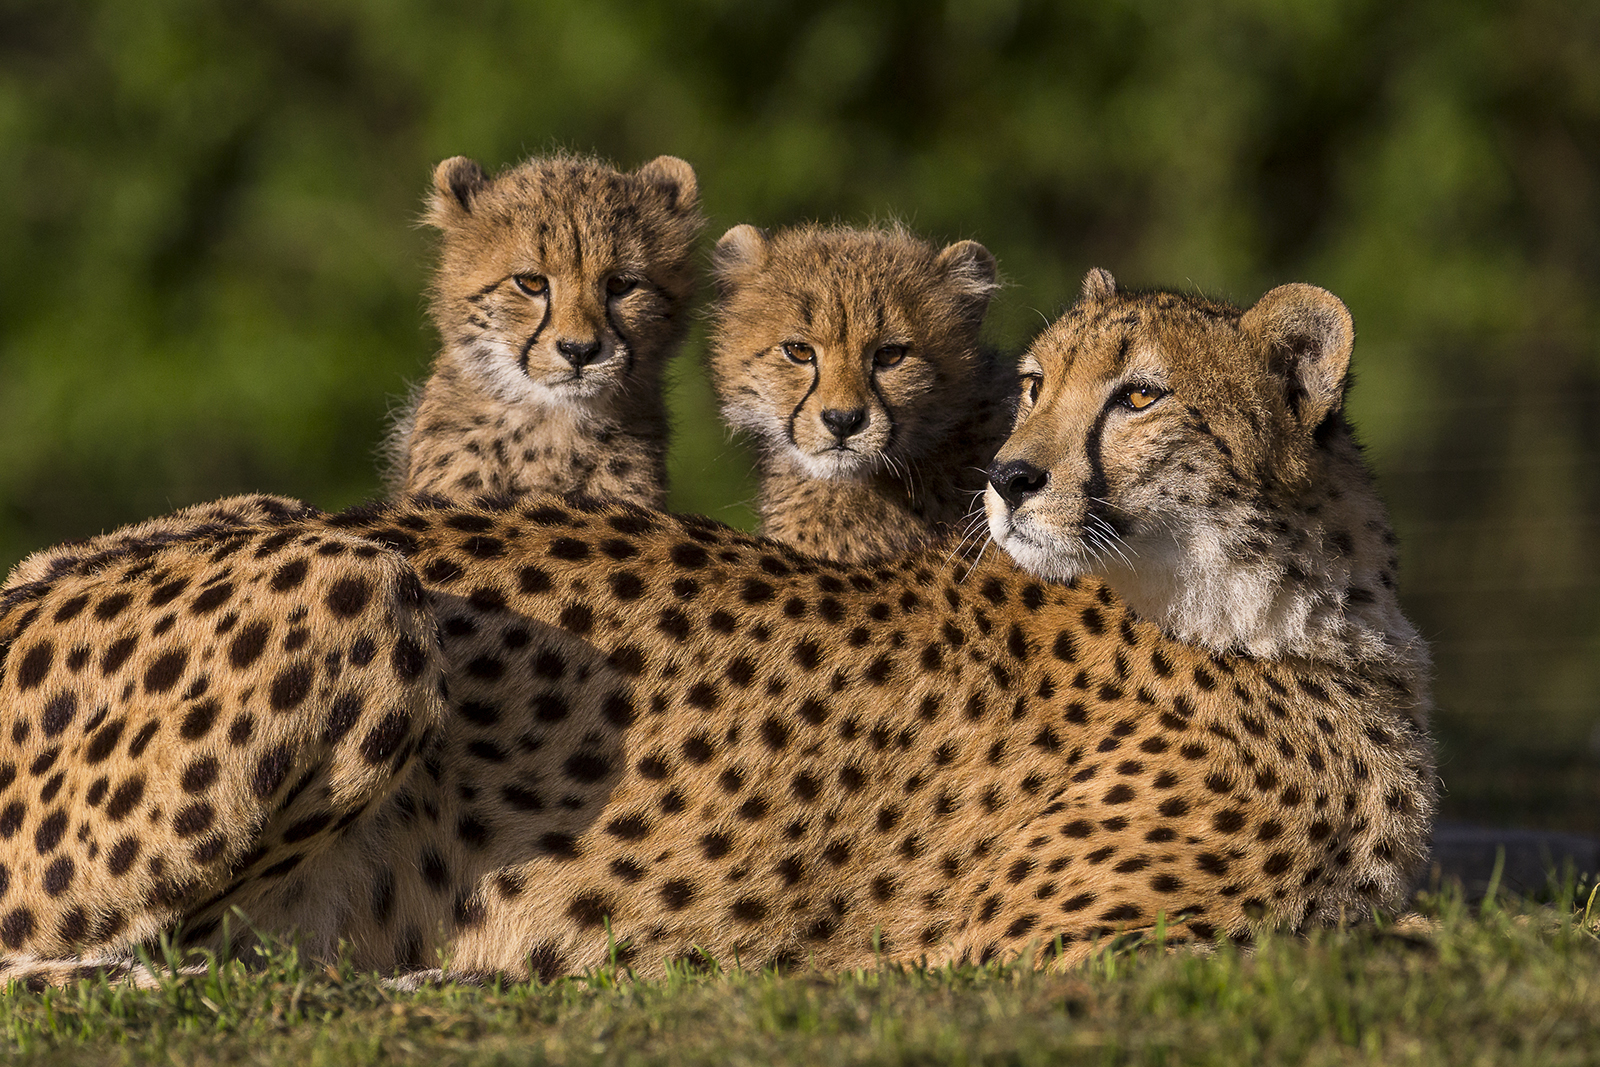 Bedrooms 4 Kids Six Cheetah Cubs Spotted At The Safari Park Zoonooz